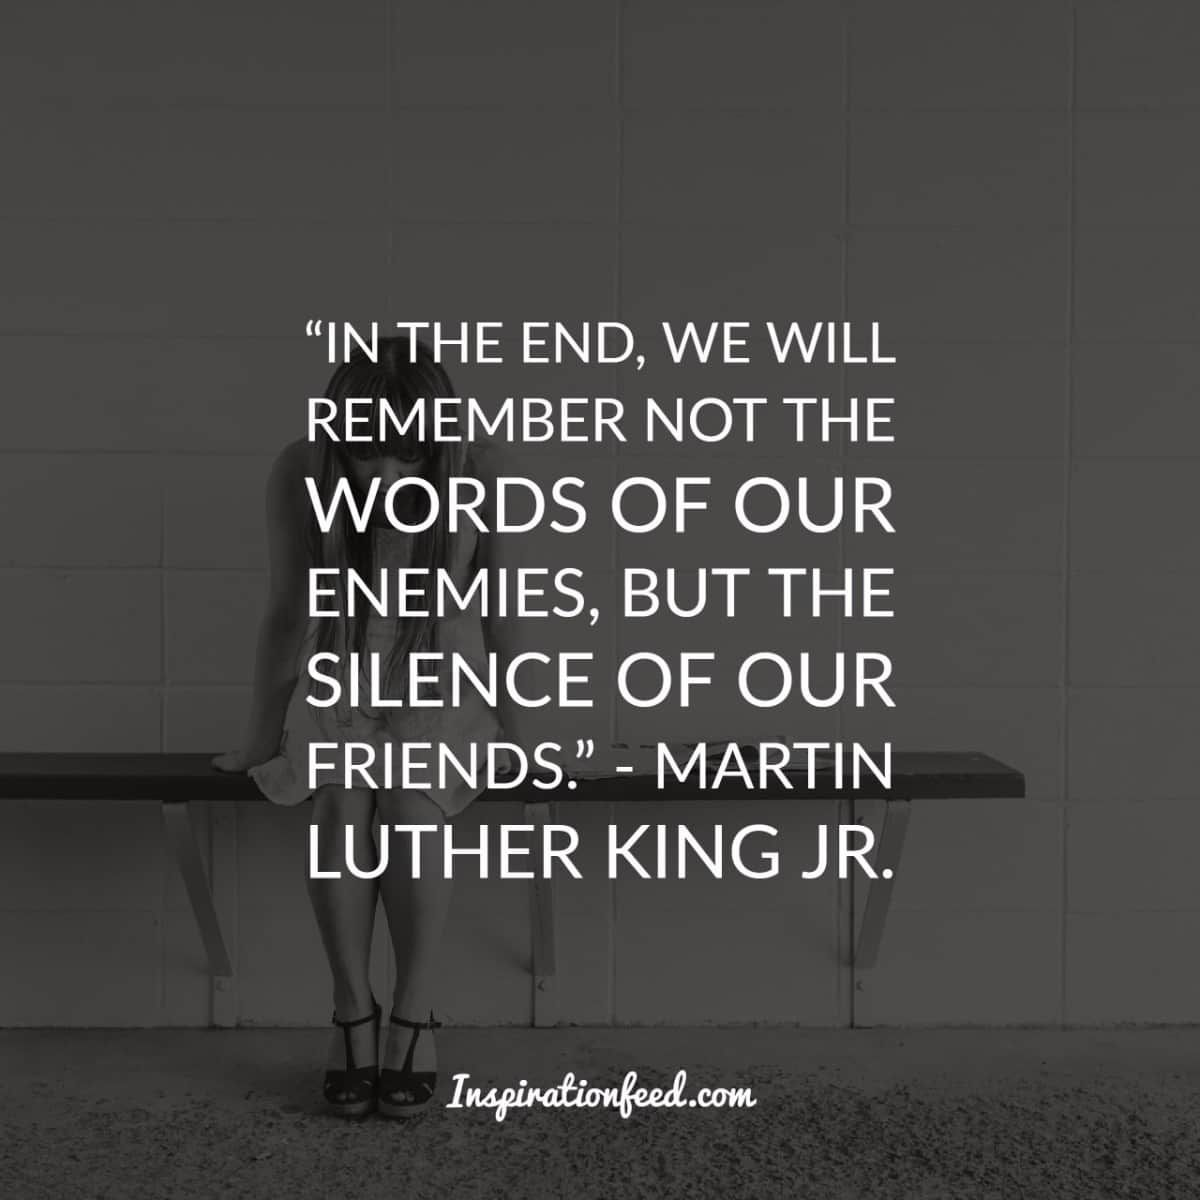 Quotes About Friendship Ending: 40 Friendship Quotes To Celebrate Your...